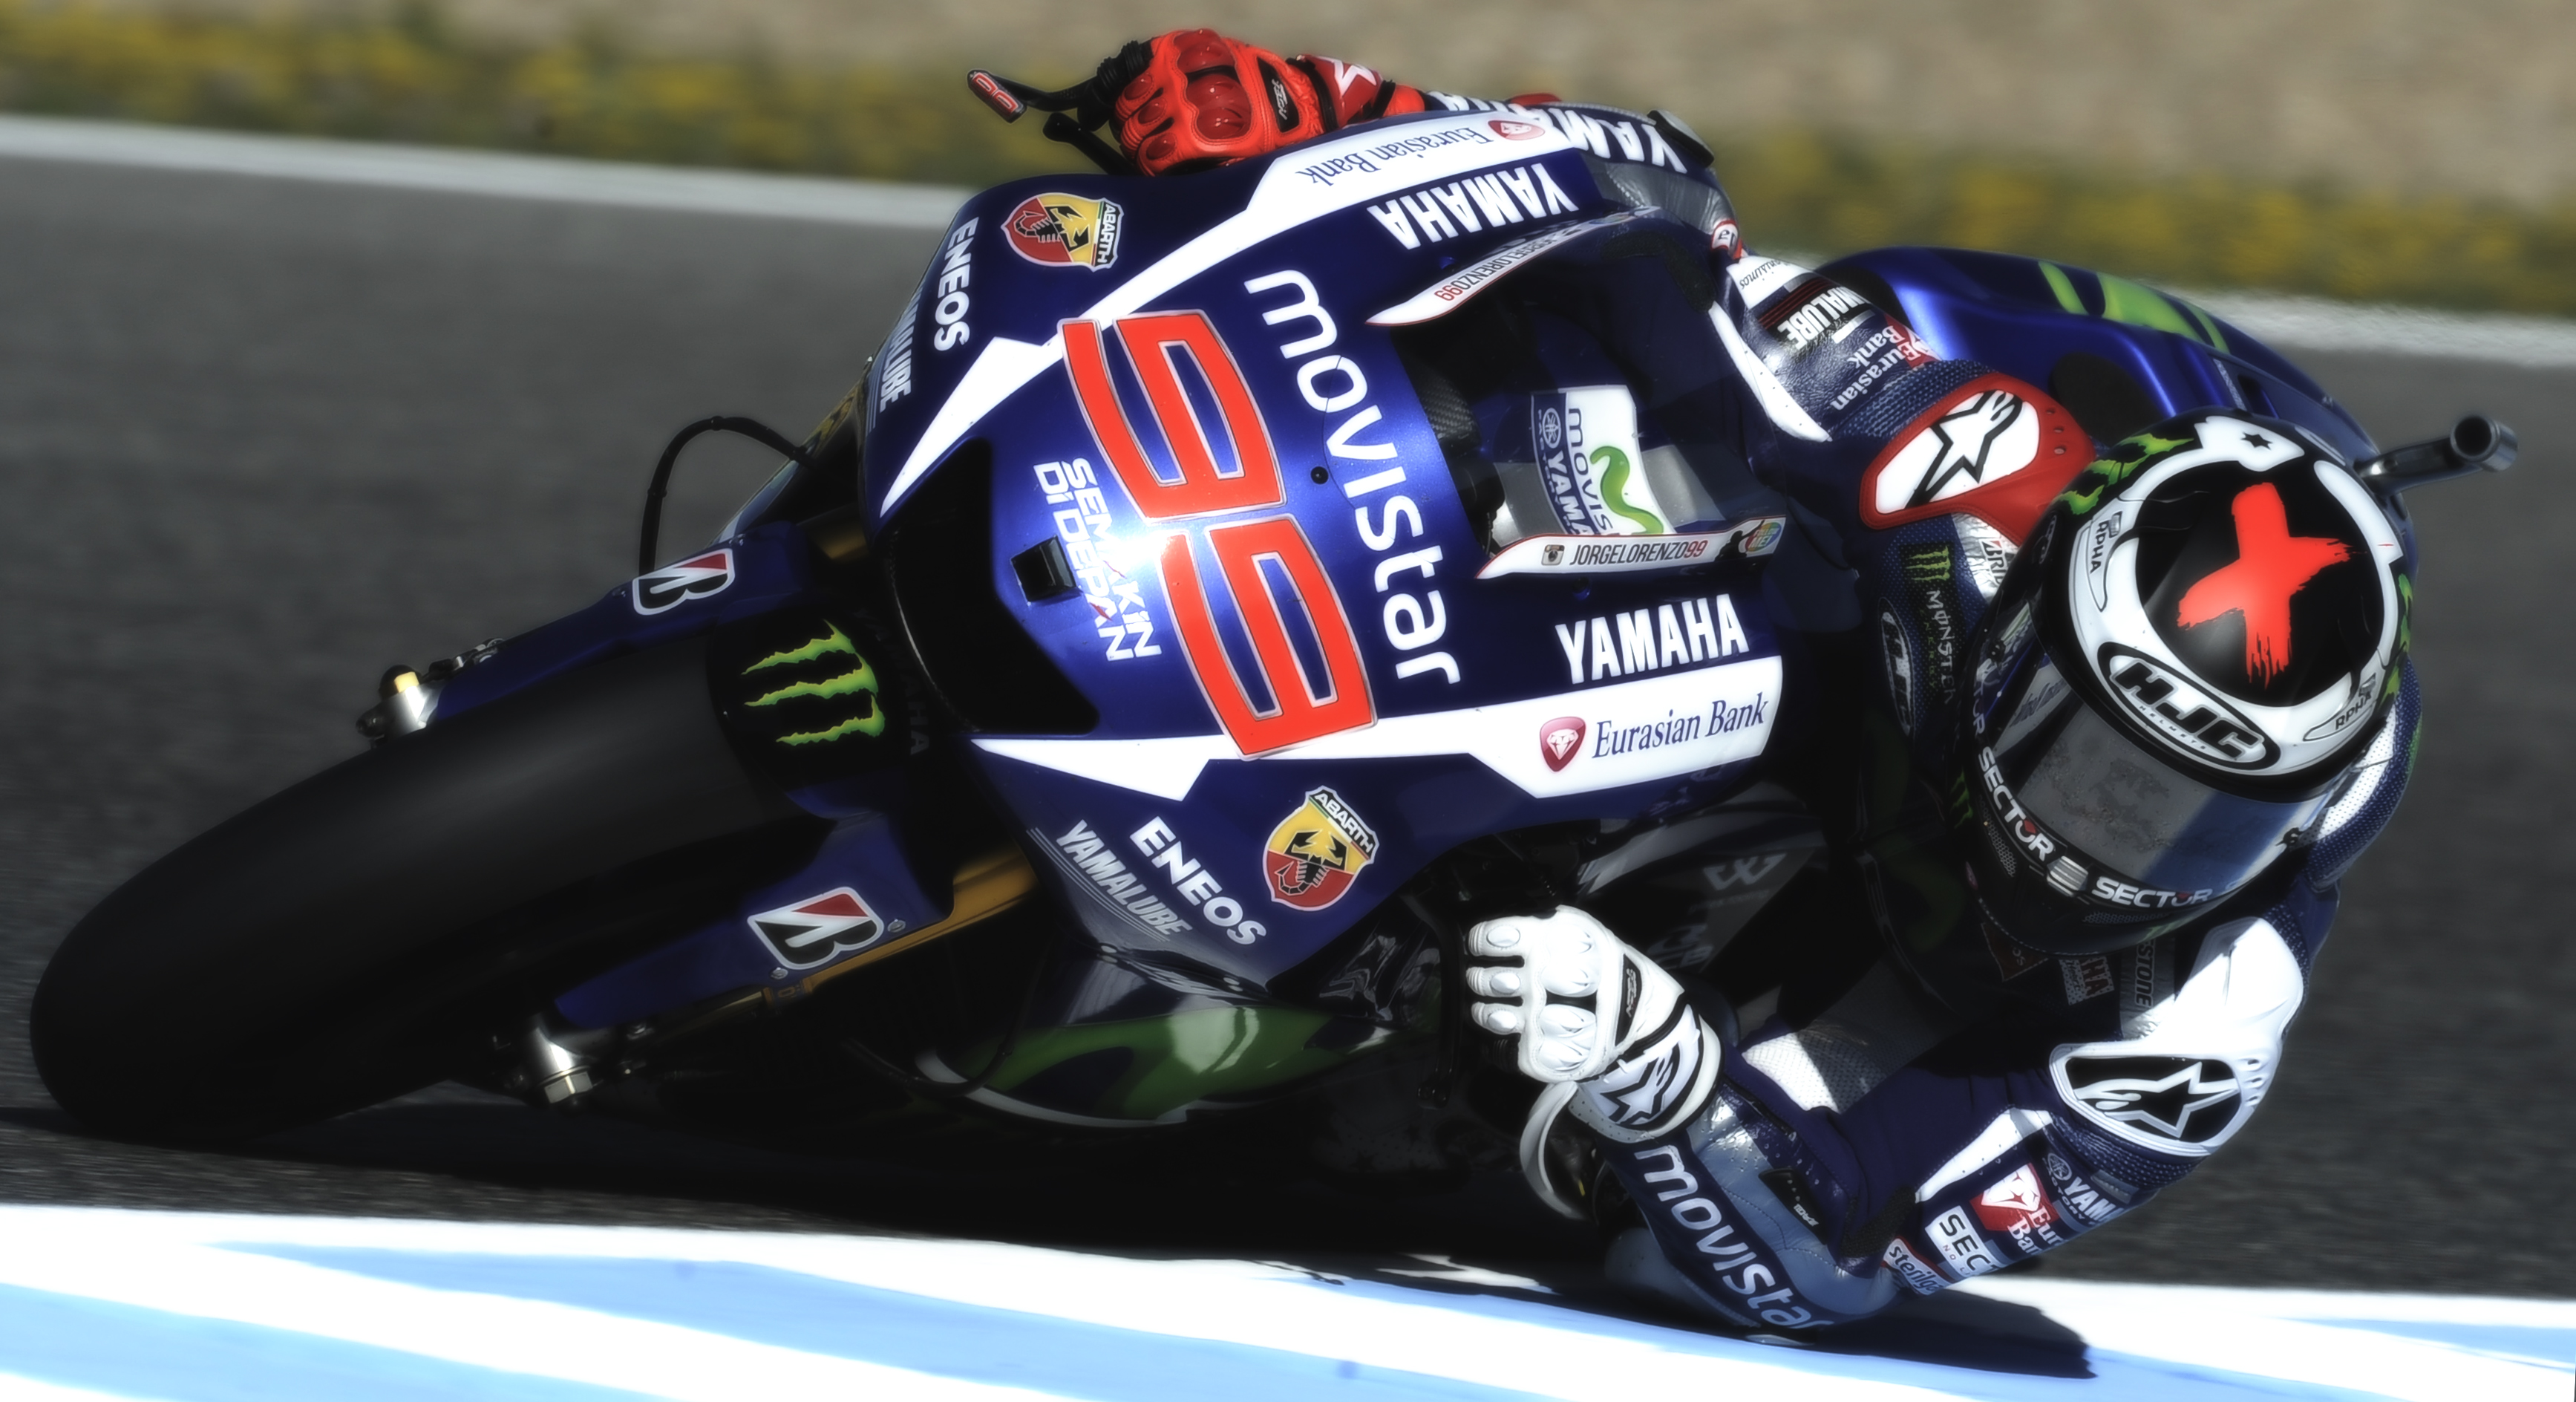 Motogp Qualifying Live Streaming Free | MotoGP 2017 Info, Video, Points Table